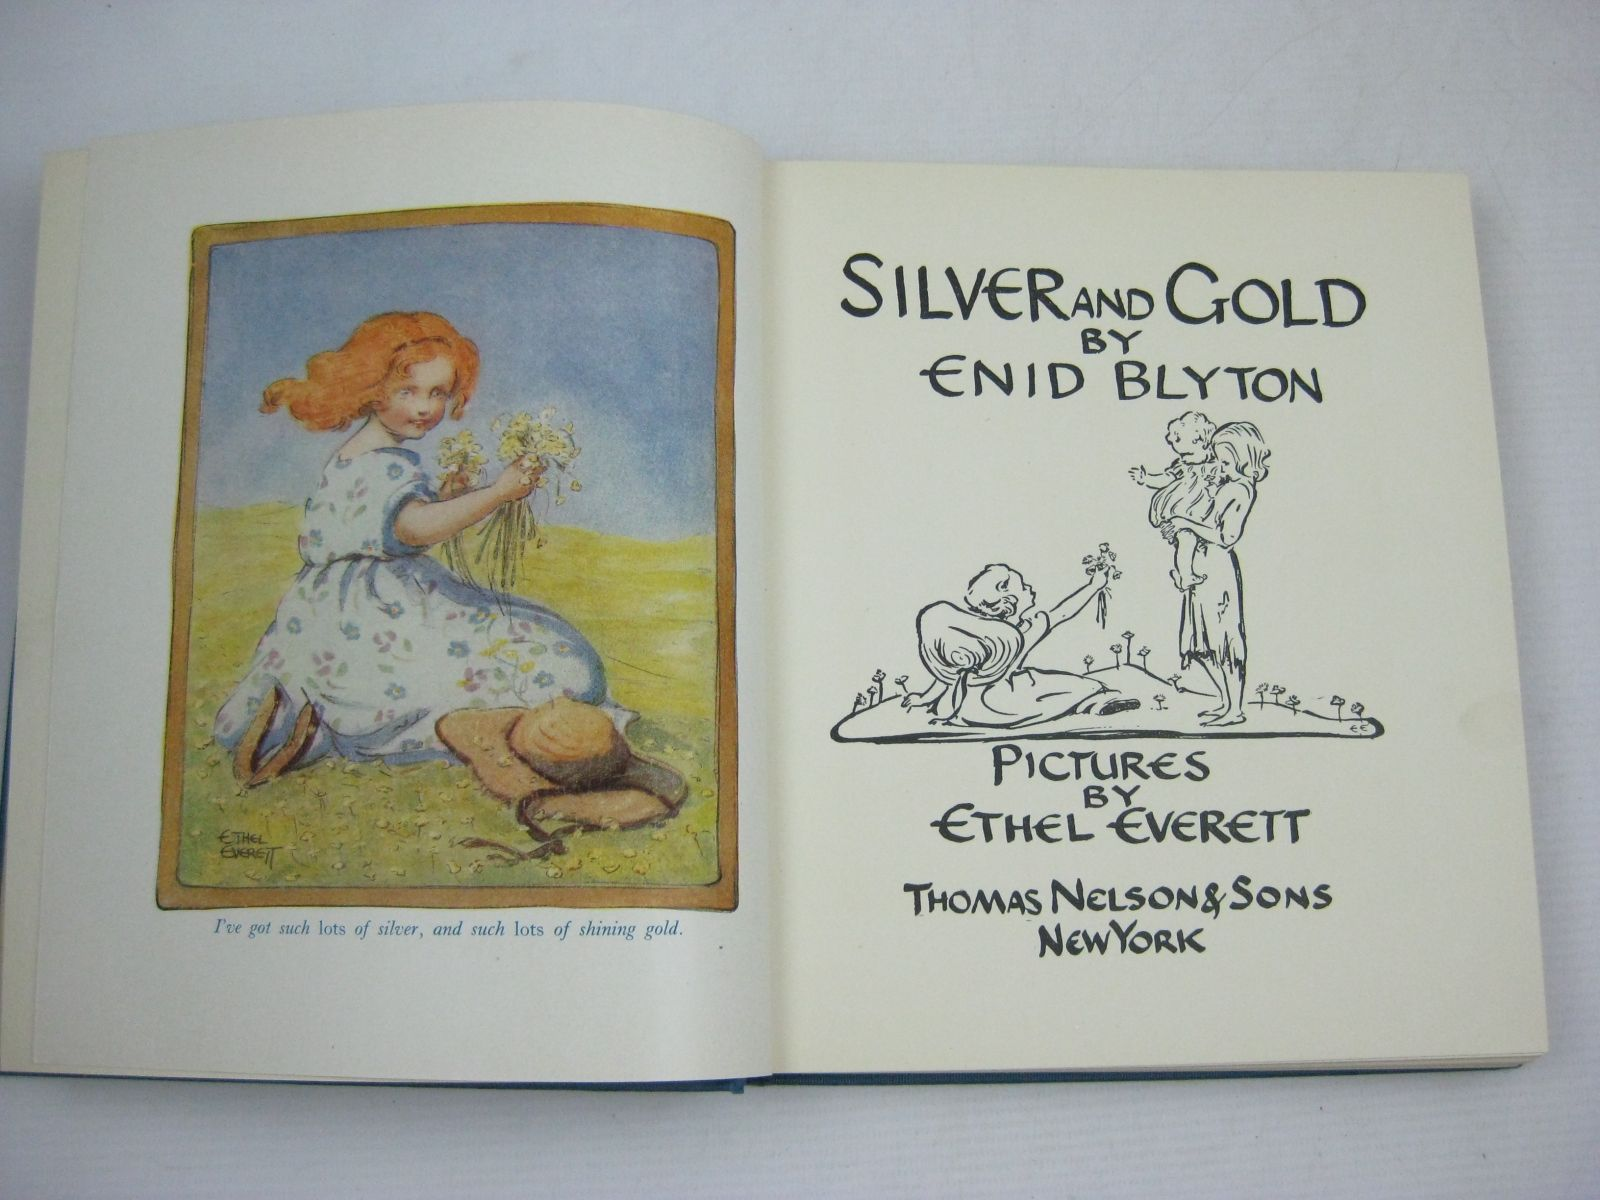 Photo of SILVER AND GOLD written by Blyton, Enid illustrated by Everett, Ethel F. published by Thomas Nelson & Sons (STOCK CODE: 1506113)  for sale by Stella & Rose's Books